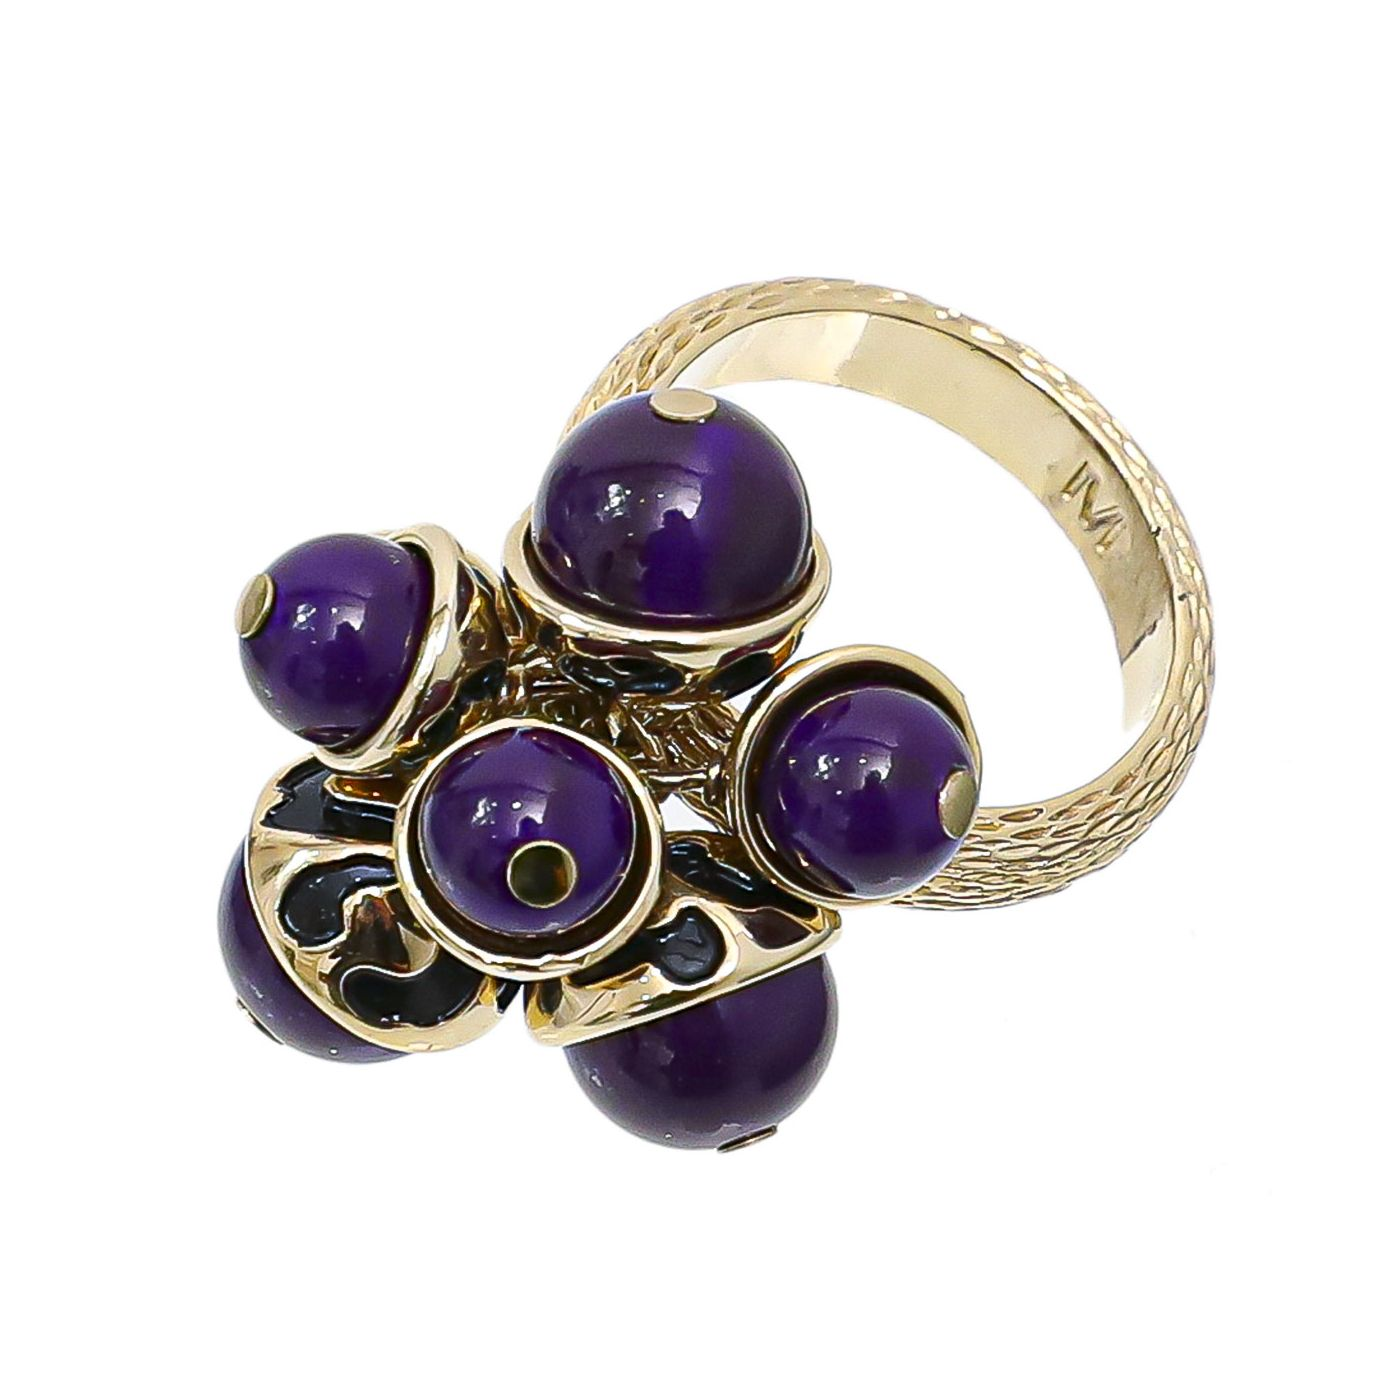 Christian Dior Purple Miss Dior Ring M